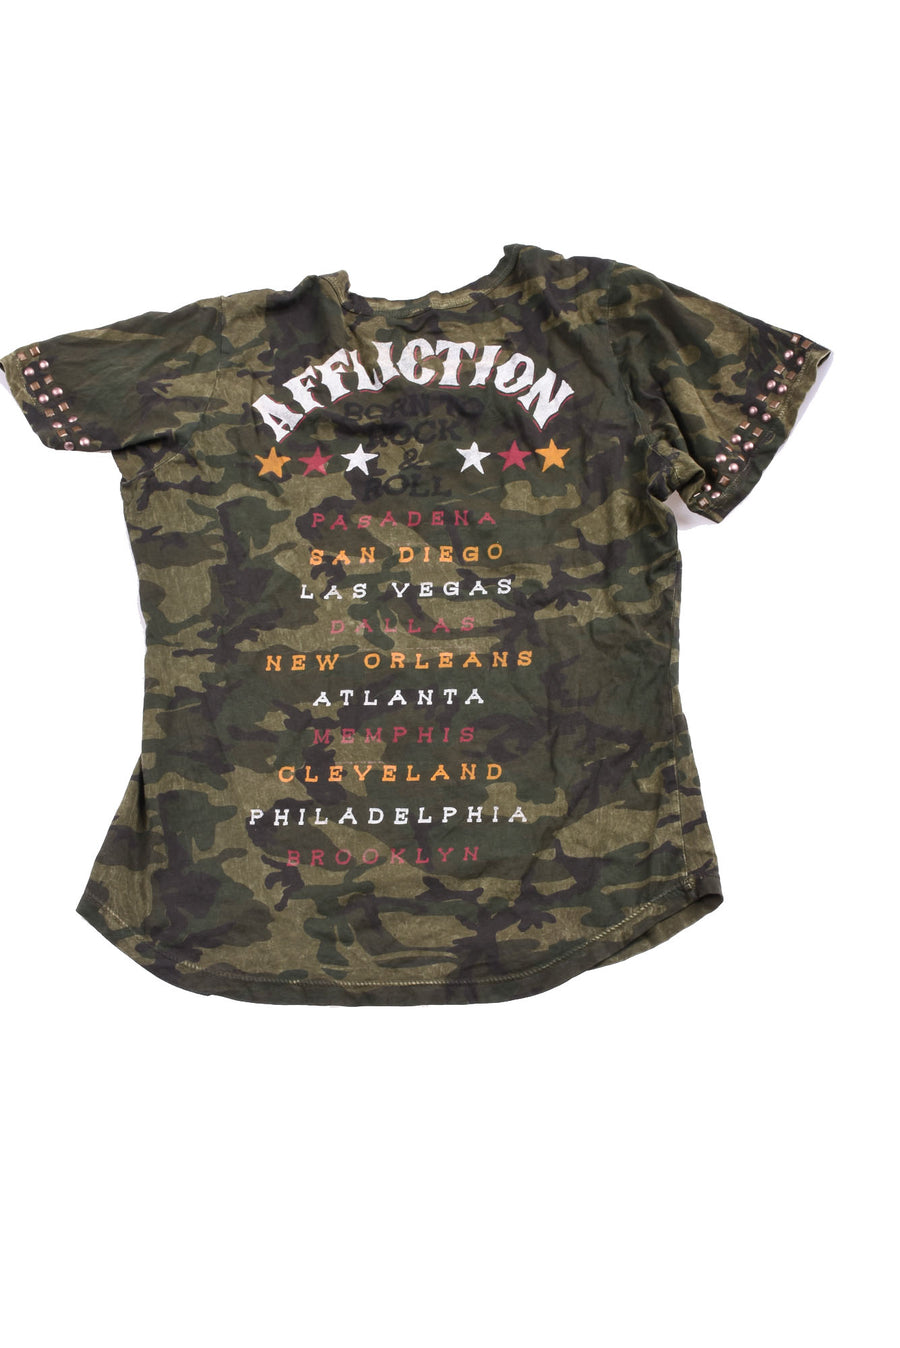 USED Affliction Women's Shirt Large Green